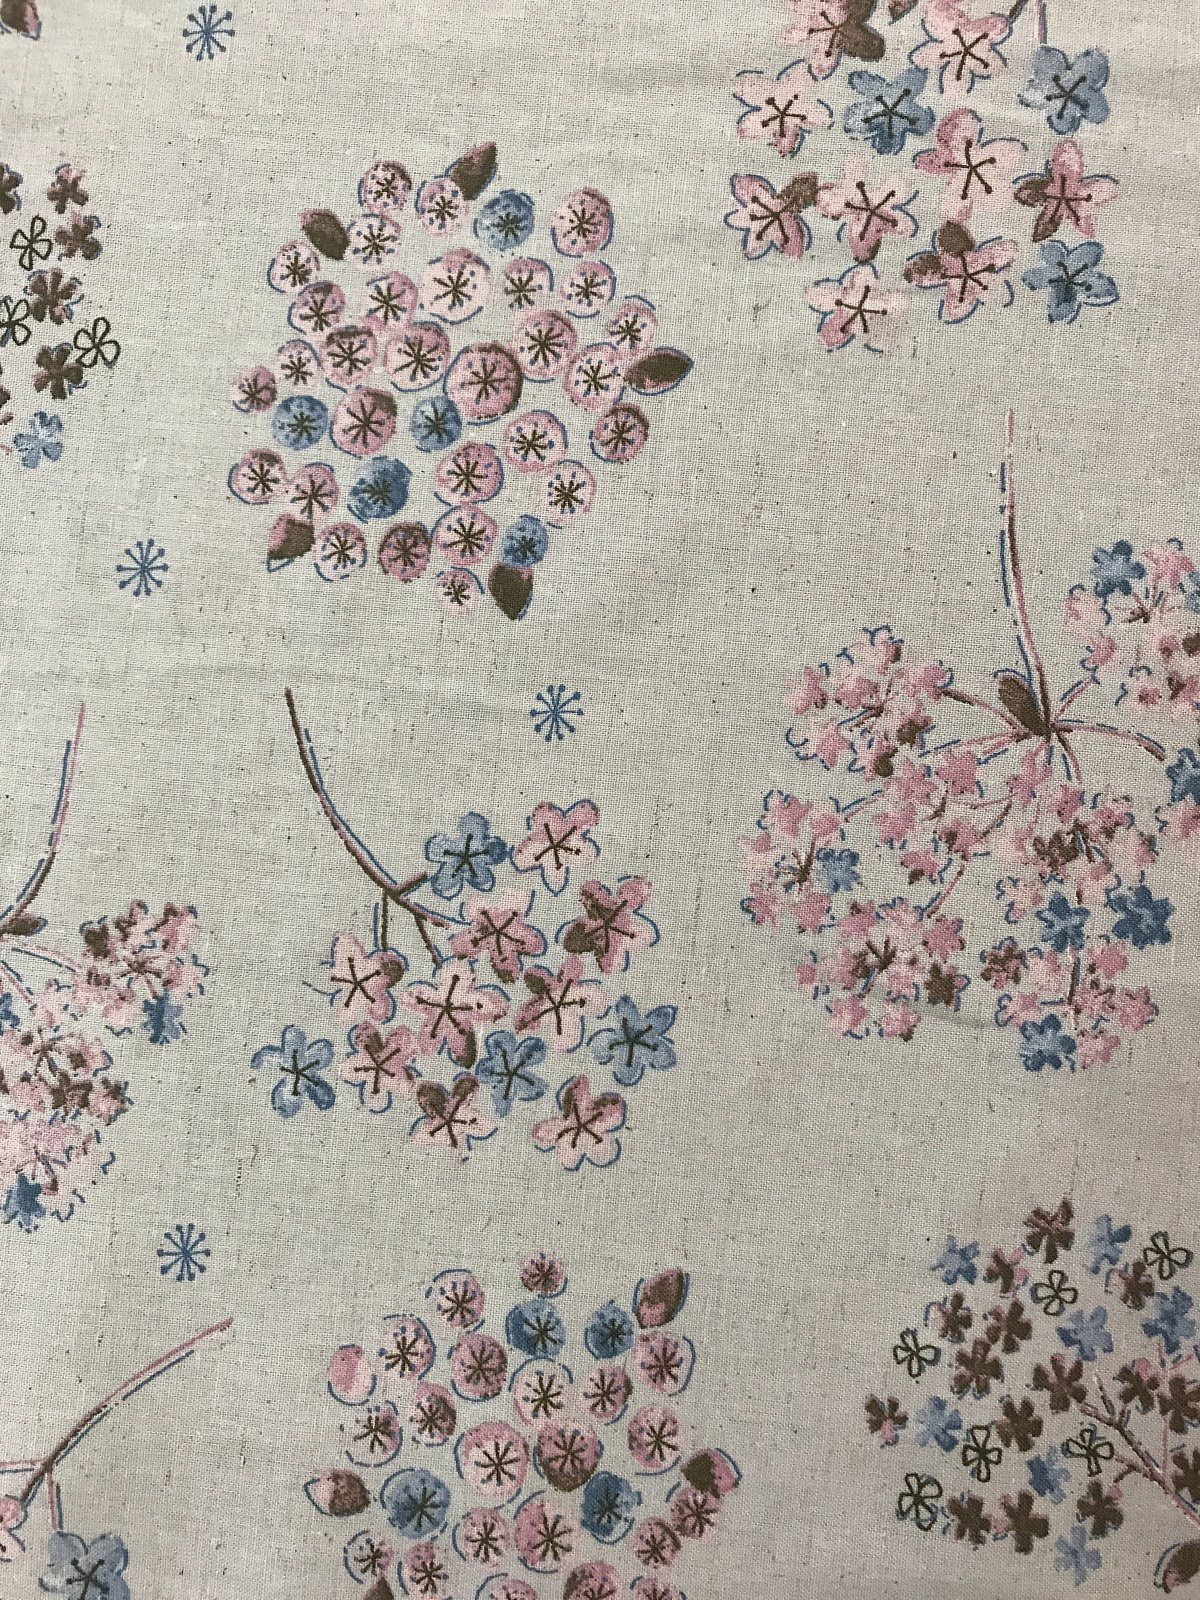 Floral Watercolor in Gray Natural (Light Linen Blend Fabric) for Koizumi Lifetex #148-1857-A1